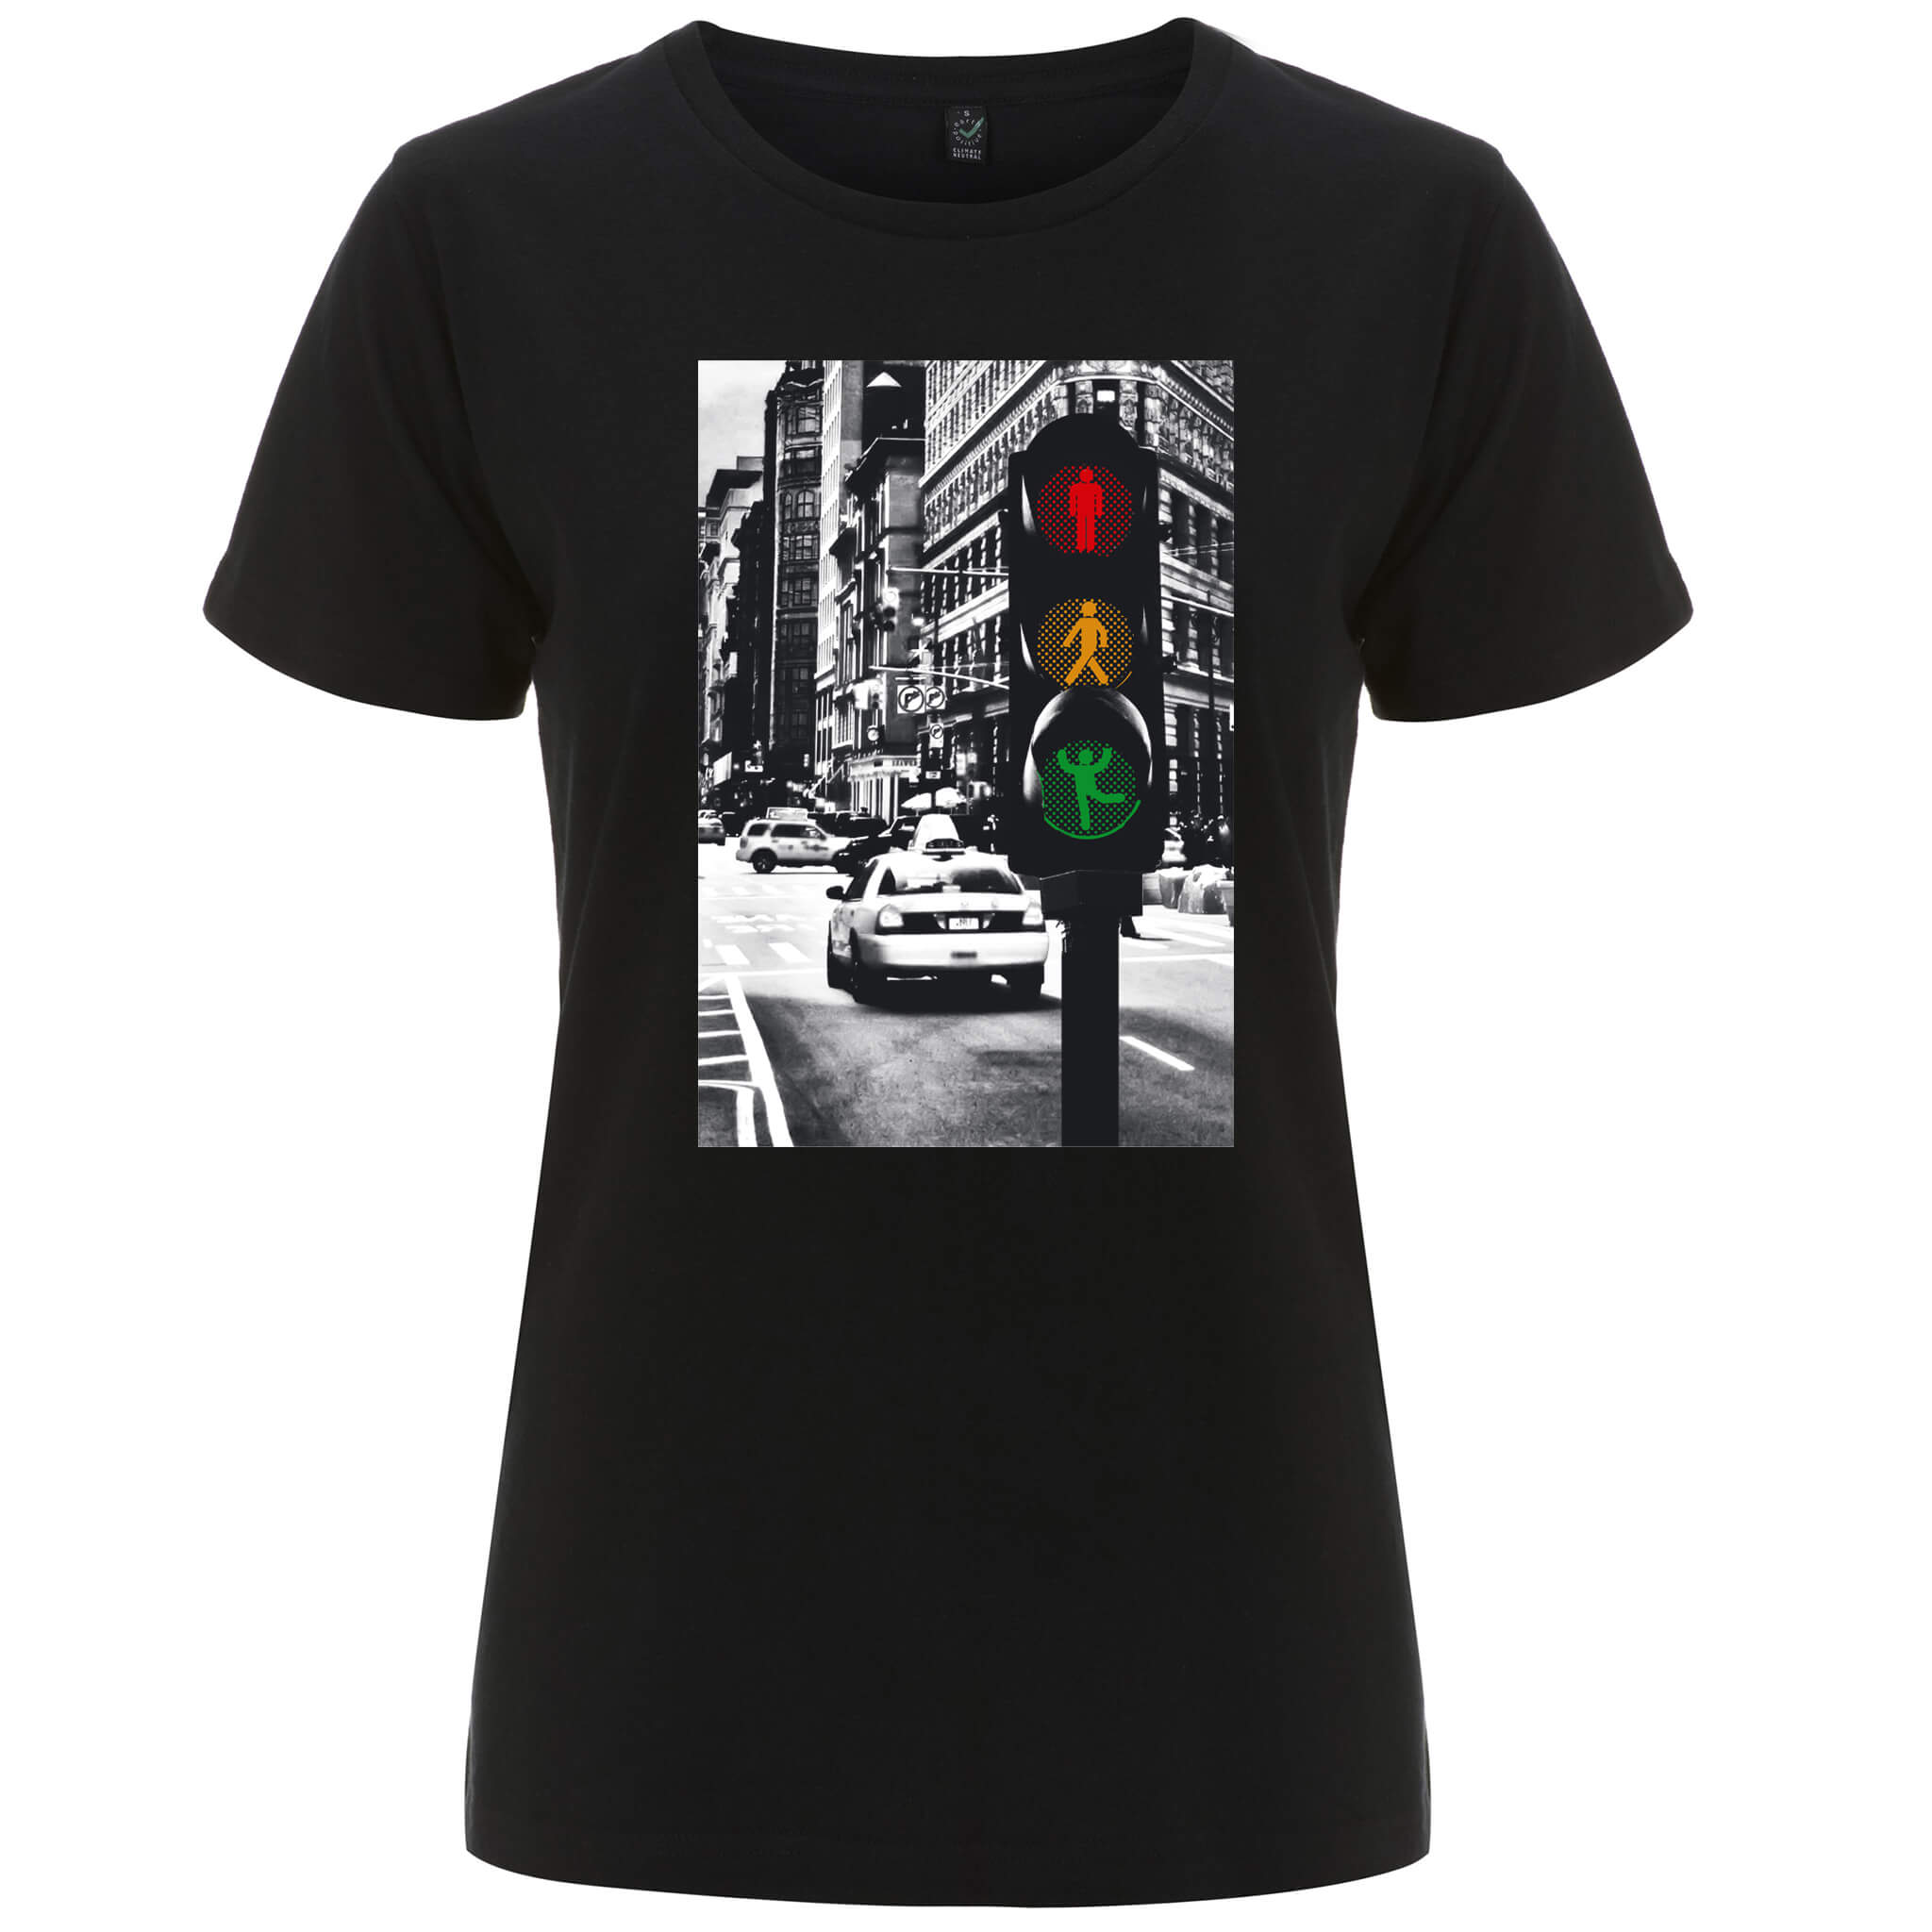 Semaforo - T-shirt Donna - T-Shirt by Fol The Brand